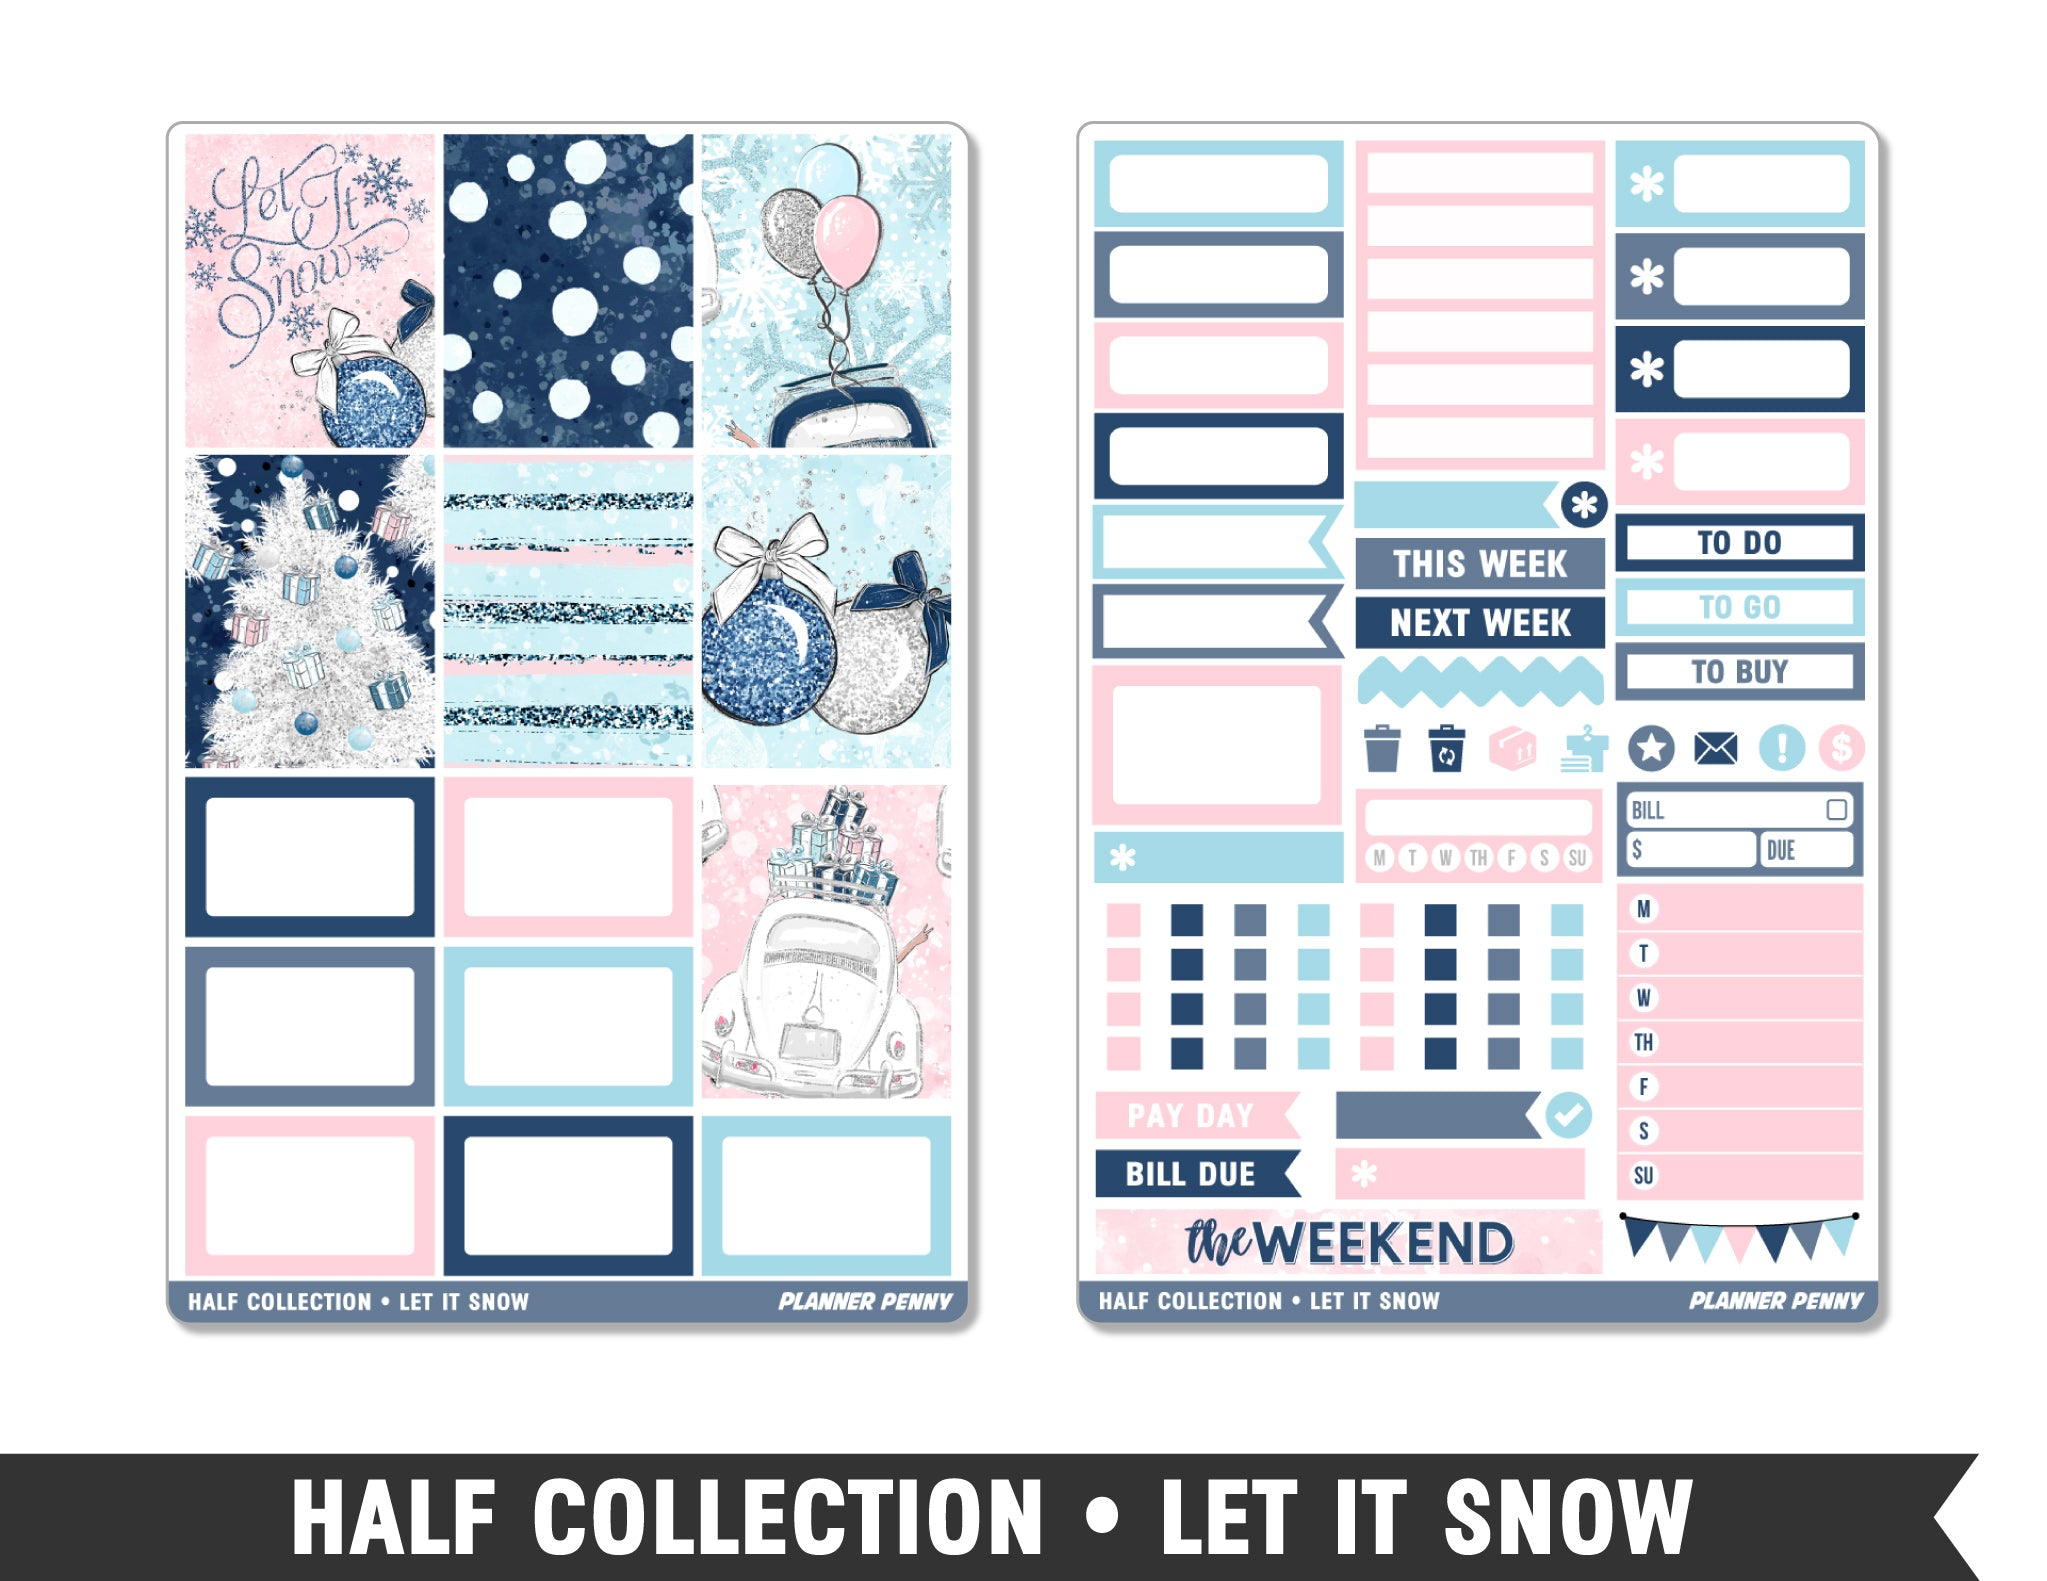 Half Collection • Let It Snow • Weekly Spread Planner Stickers - Planner Penny